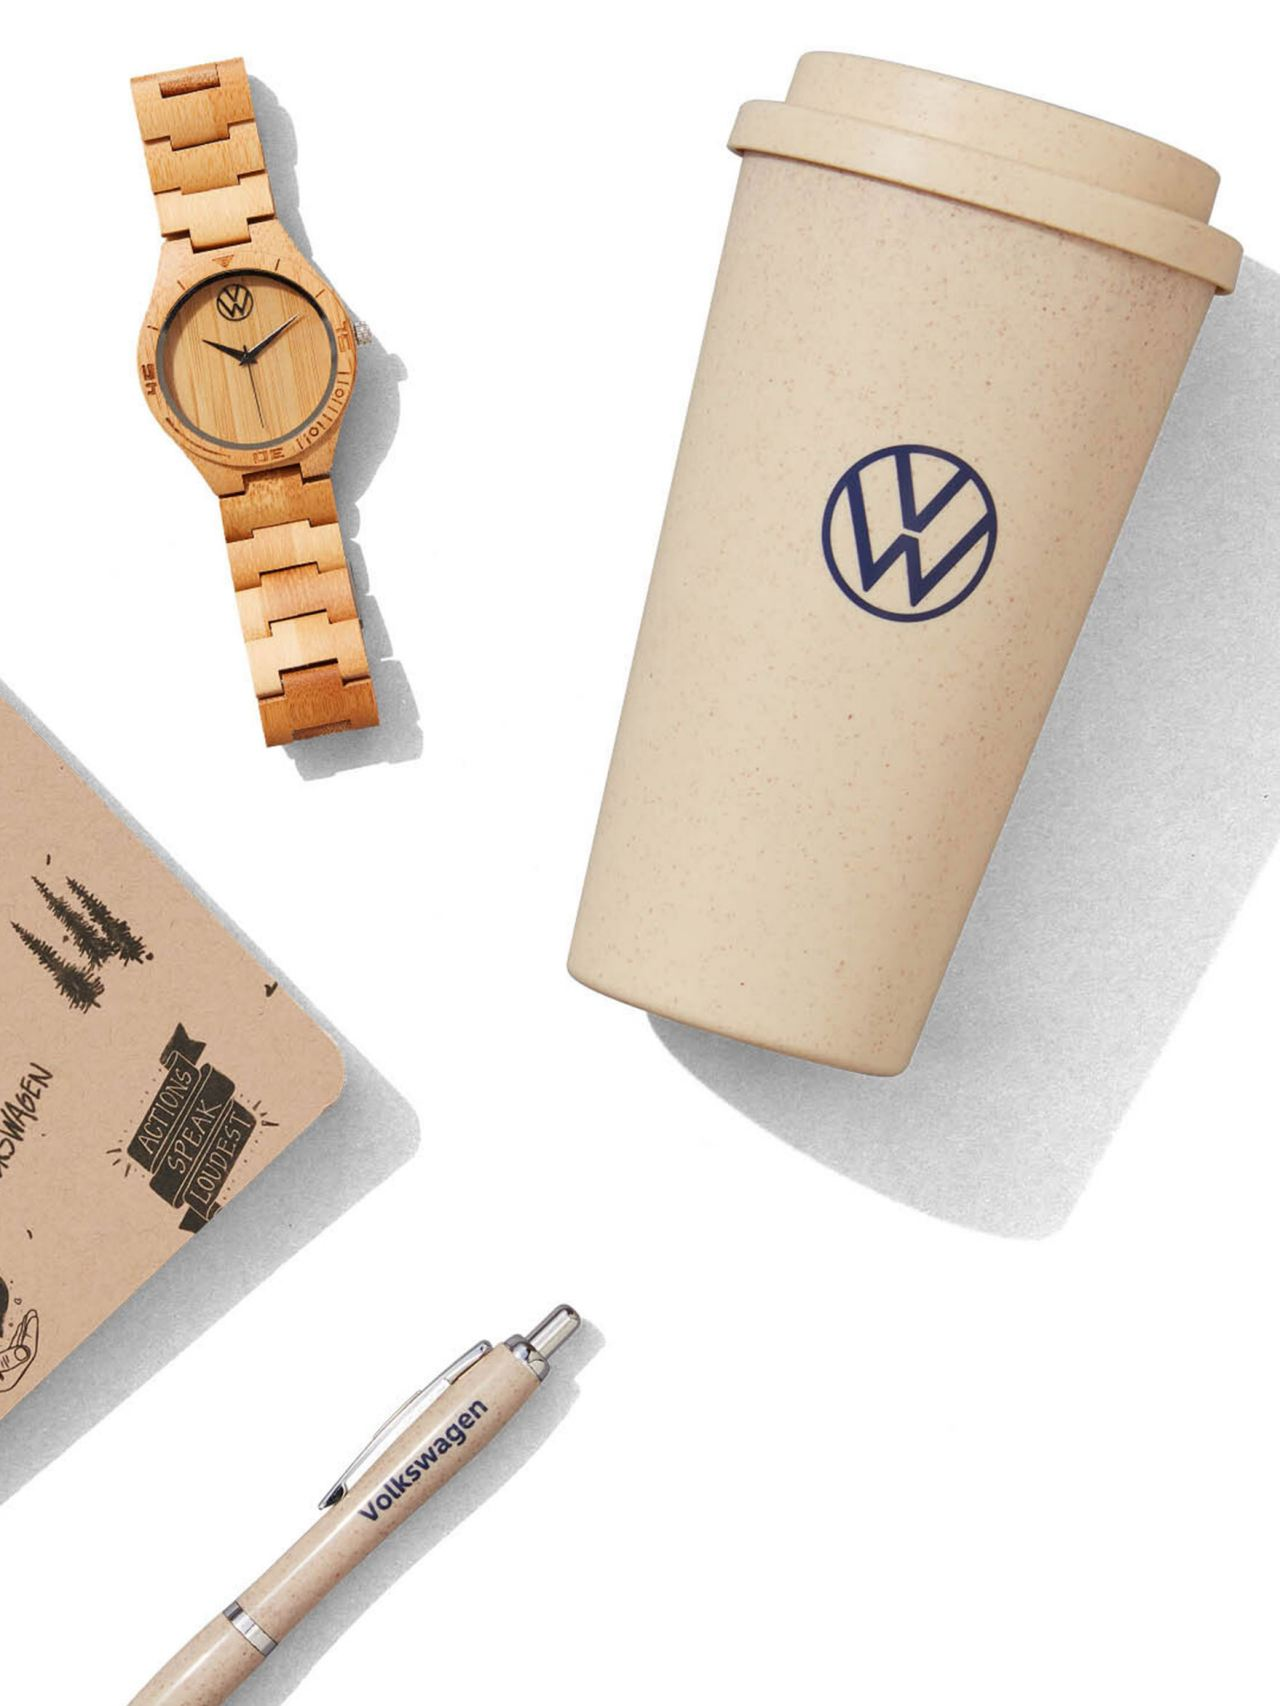 A collection of four VW Driver Gear products including a tumbler, pen, notebook, and watch.